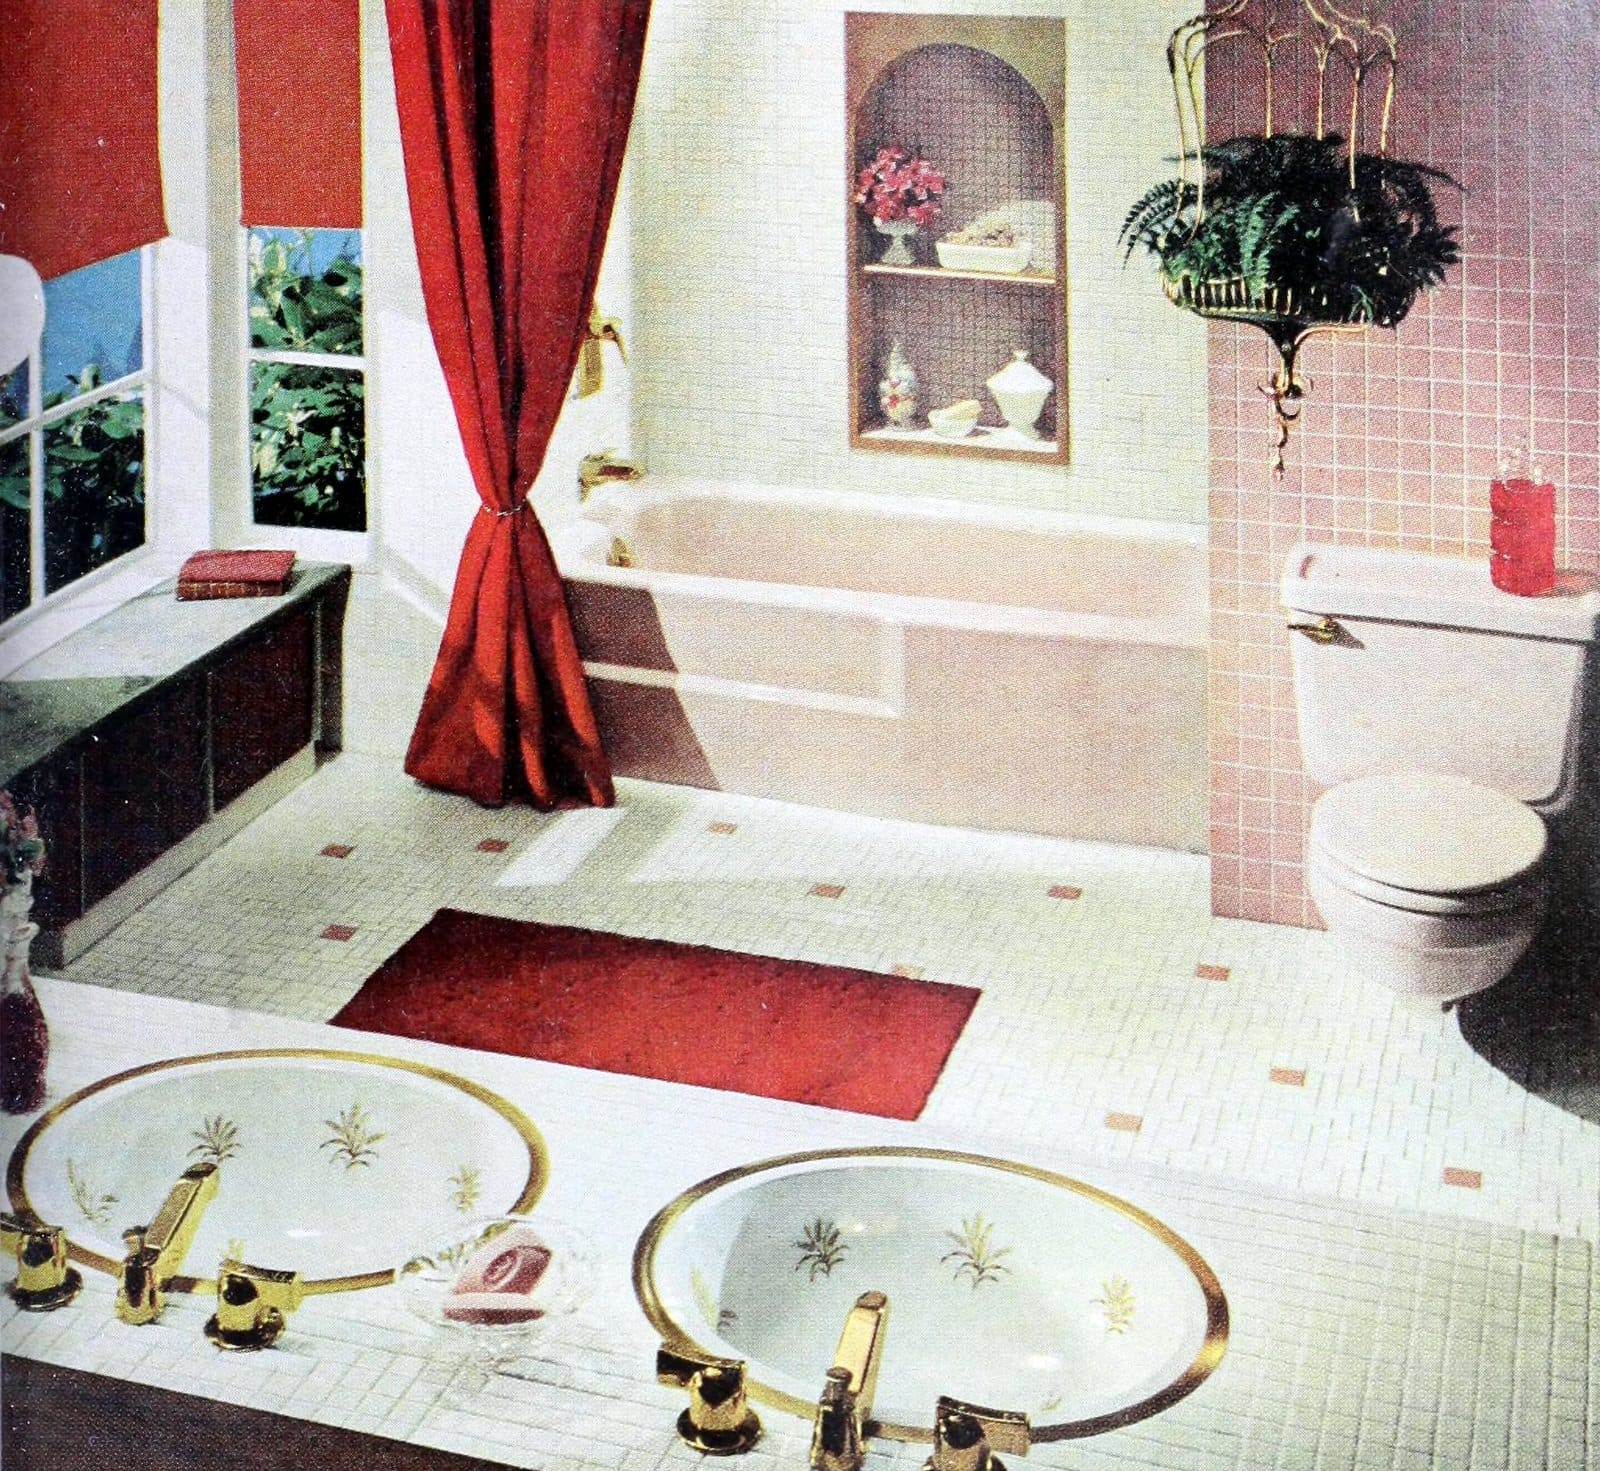 Retro 1960s pink white and red tiled bathroom decor